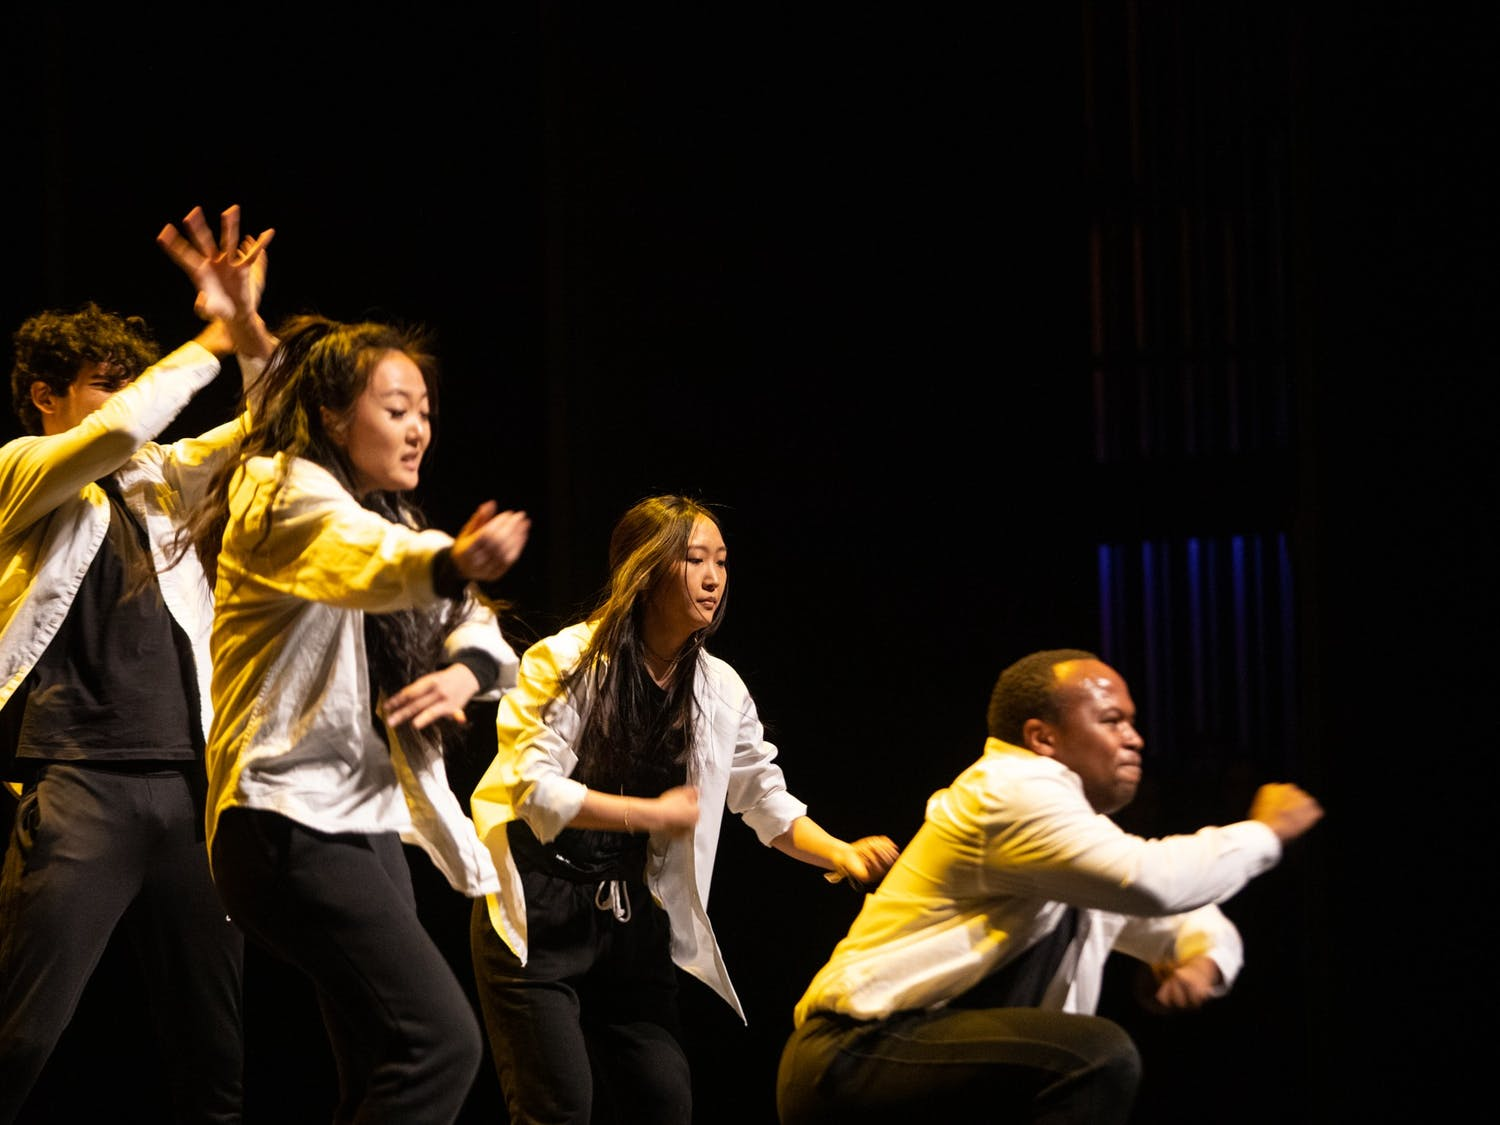 """Project Won presents their performance """"Re-presentation of Perception"""" at Journey Into Asia at Memorial Hall on Saturday, Feb. 29, 2020. Project Won hopes to """"challenge mainstream media's representation of South Korea"""" through urban dance."""